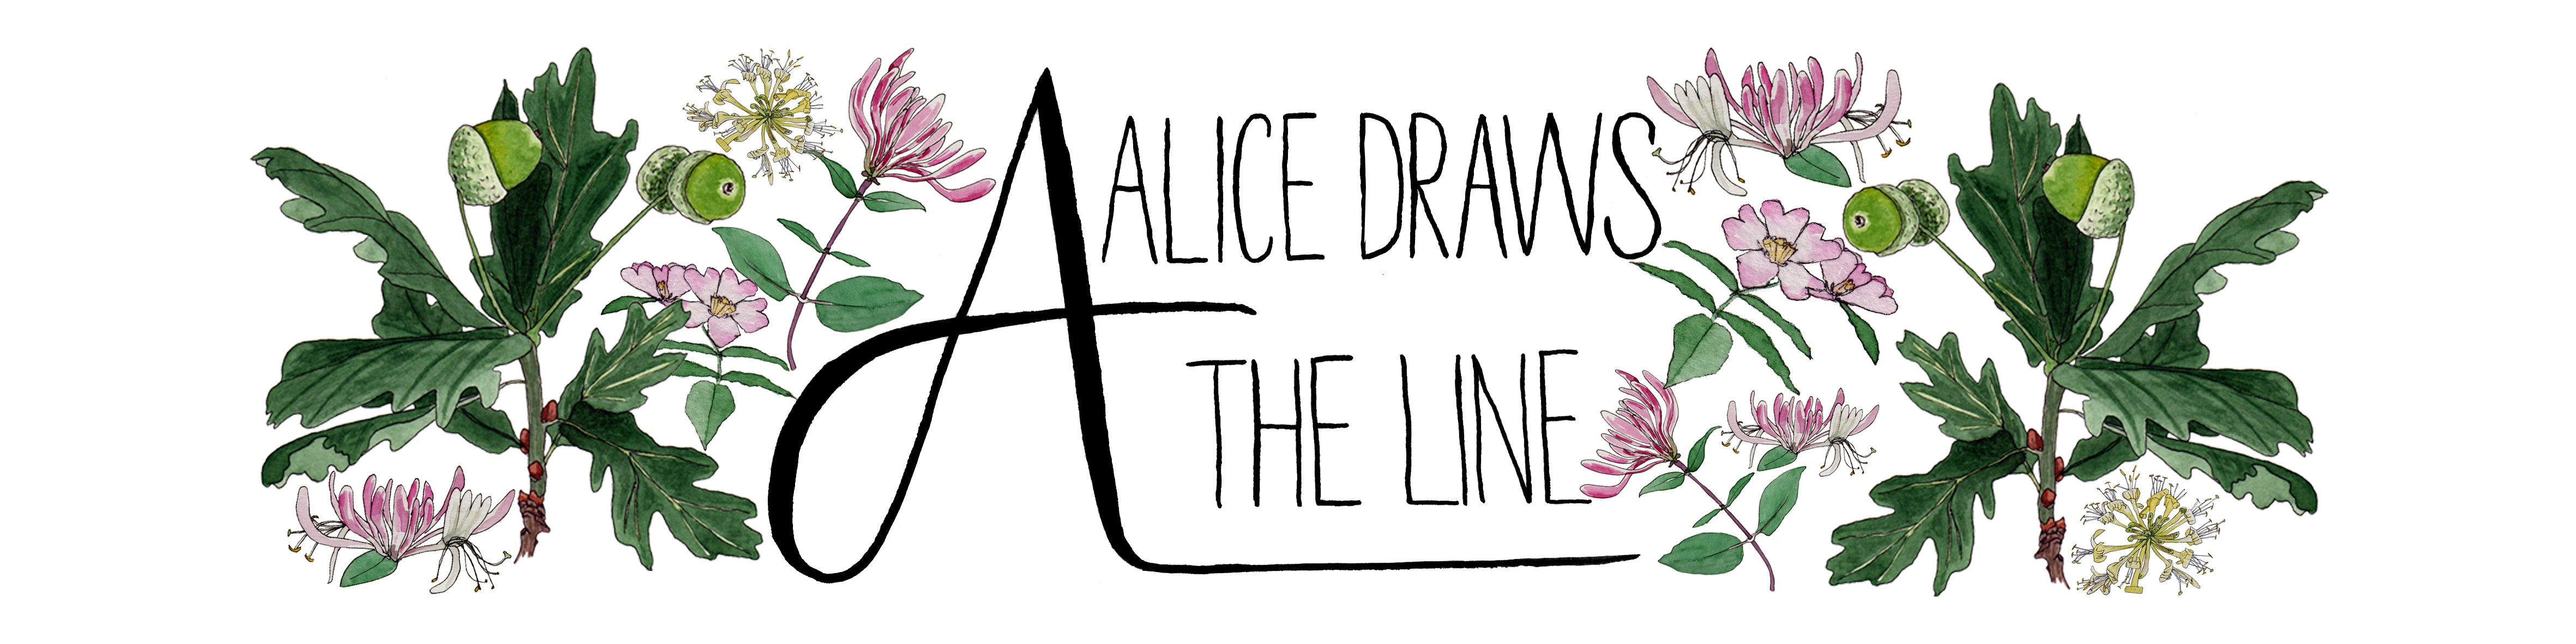 Alice Draws the Line, Brand Identity, March Meet the Maker